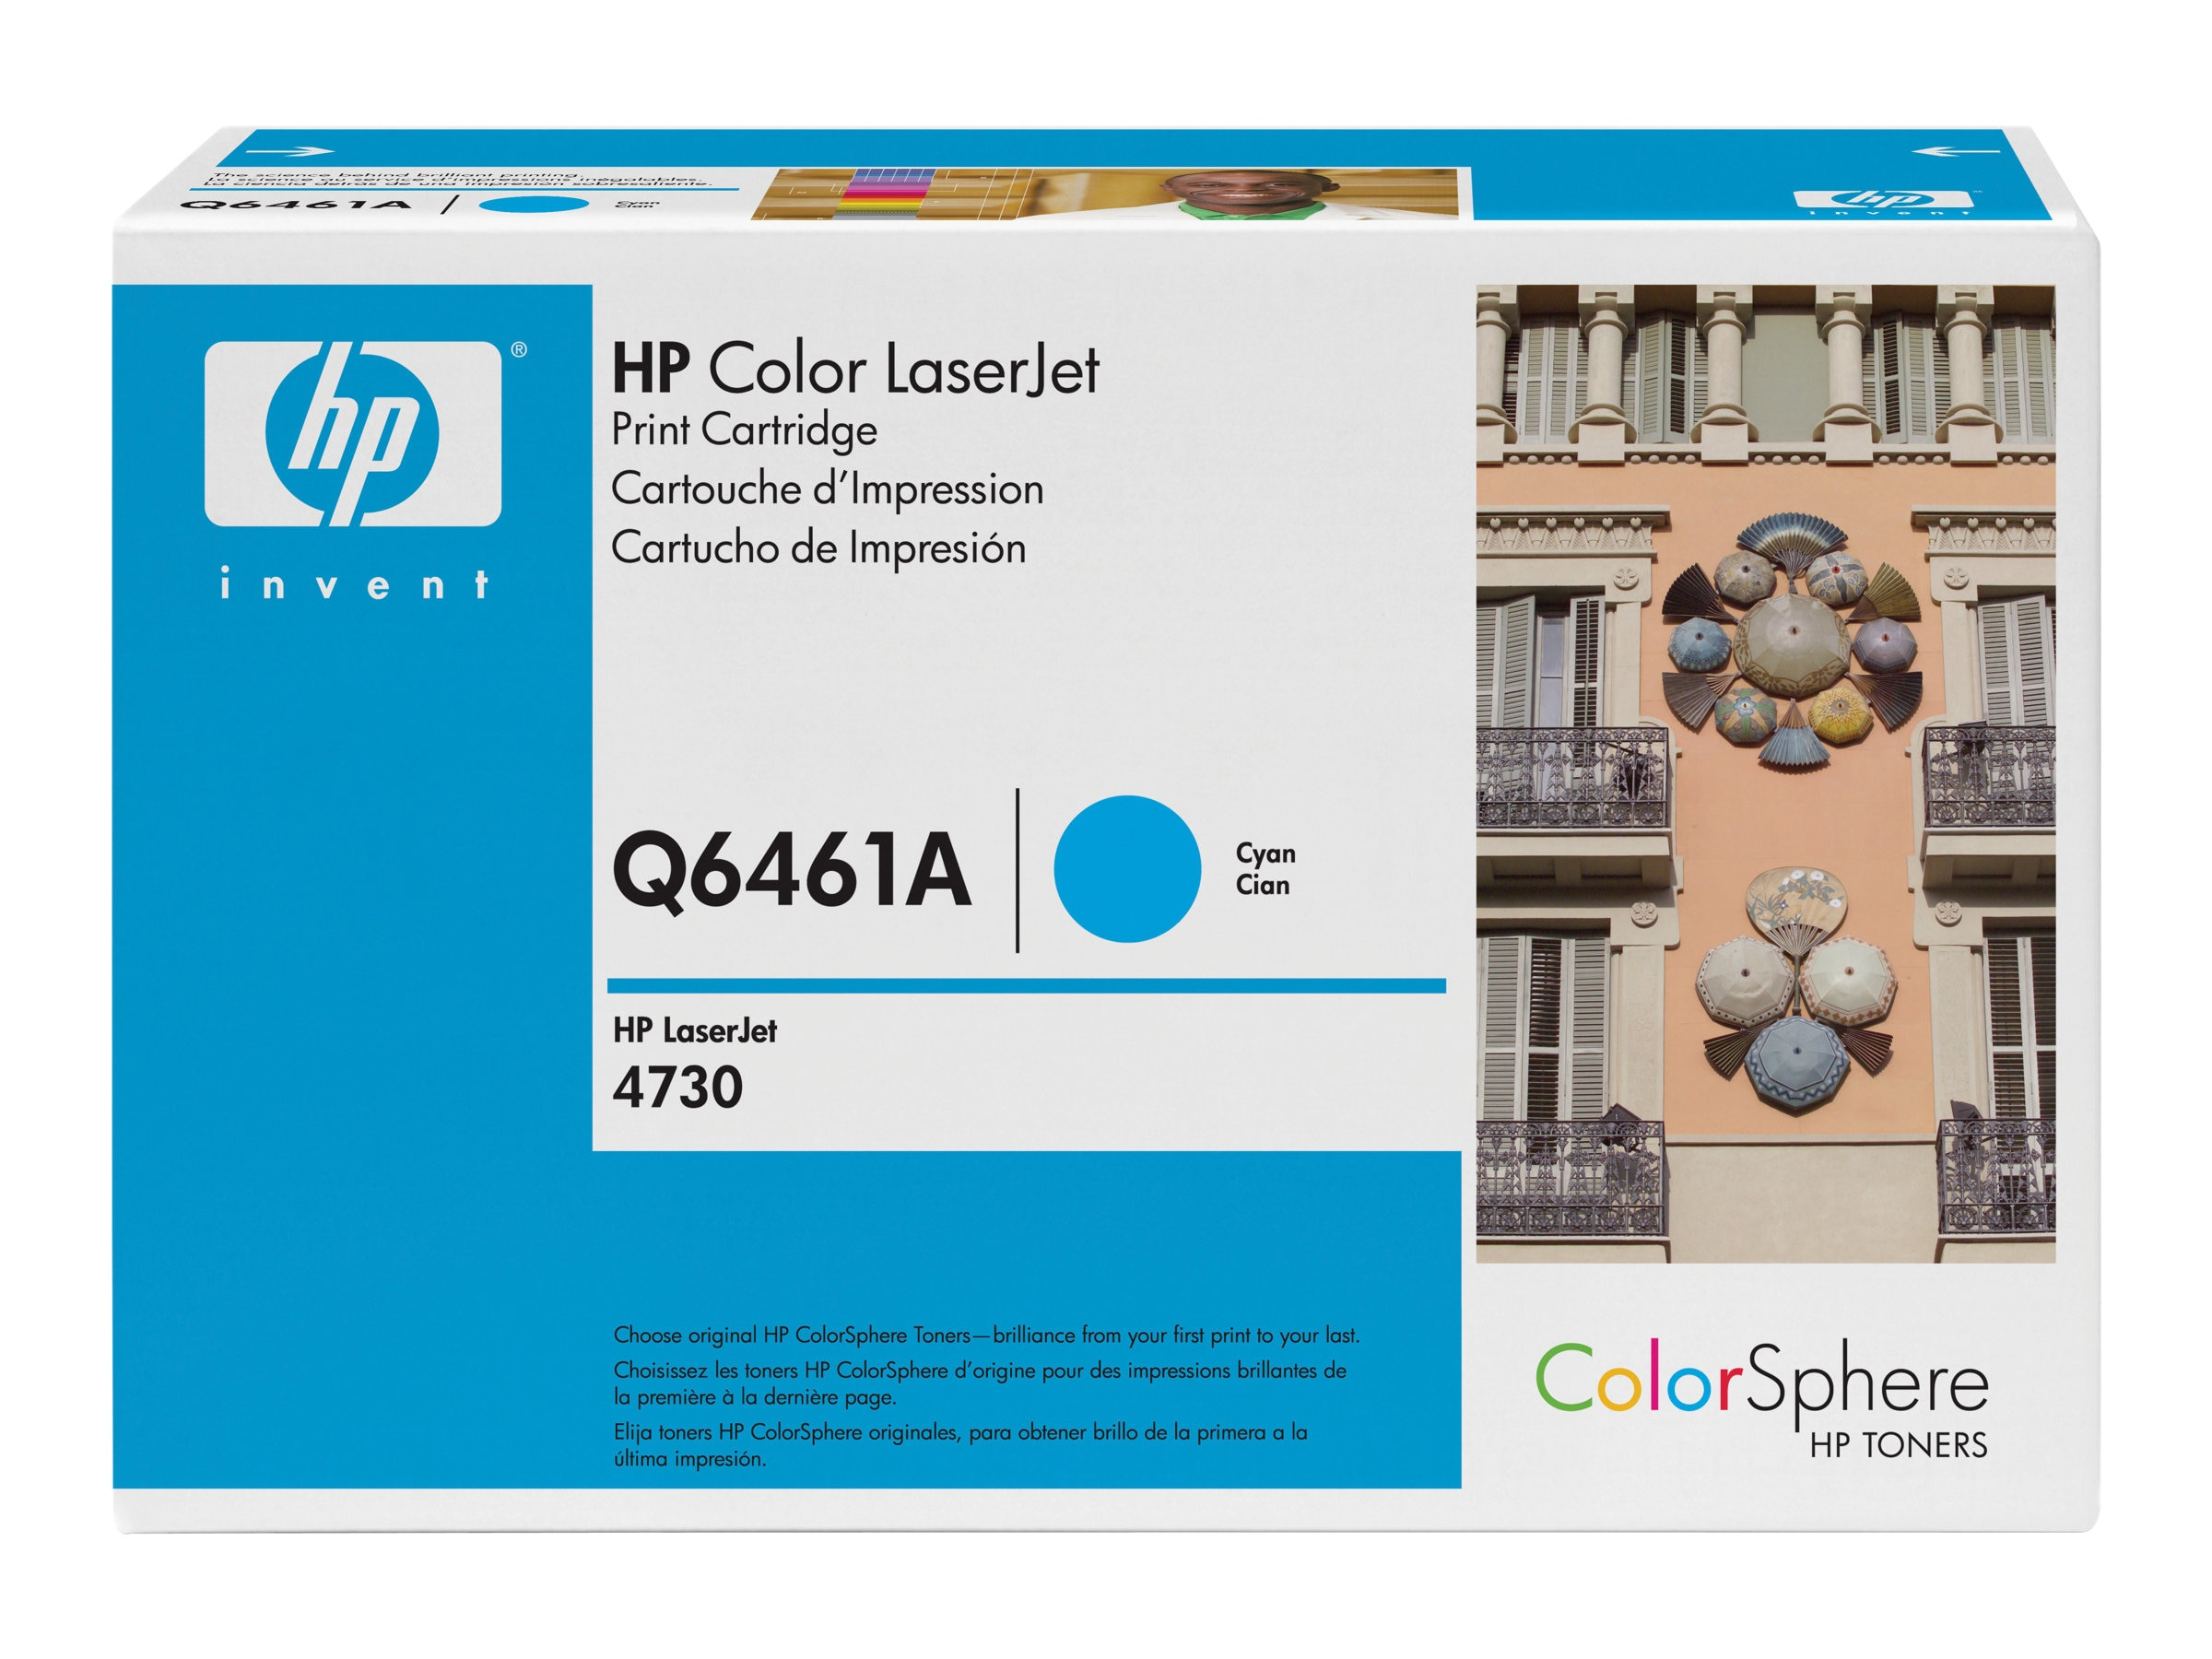 HP Inc. Q6461A Image 2